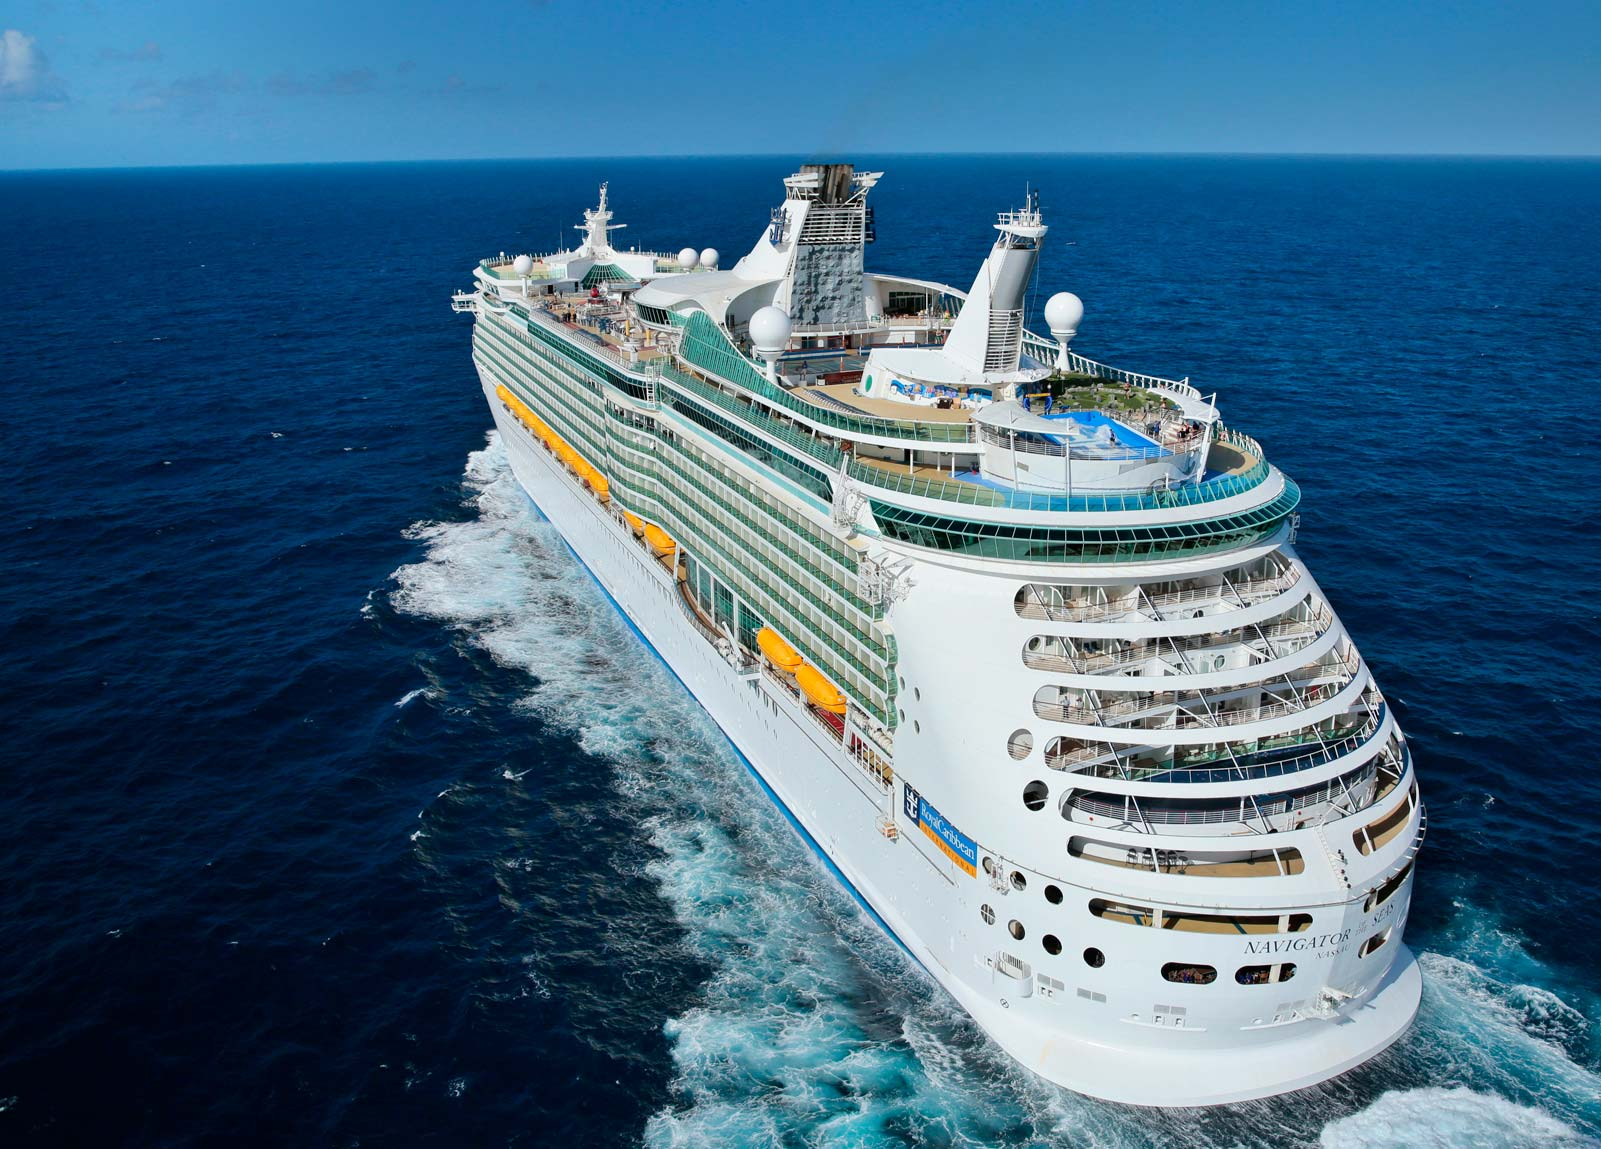 CRUISING THE ULTIMATE VACATION EXPERIENCE!!!